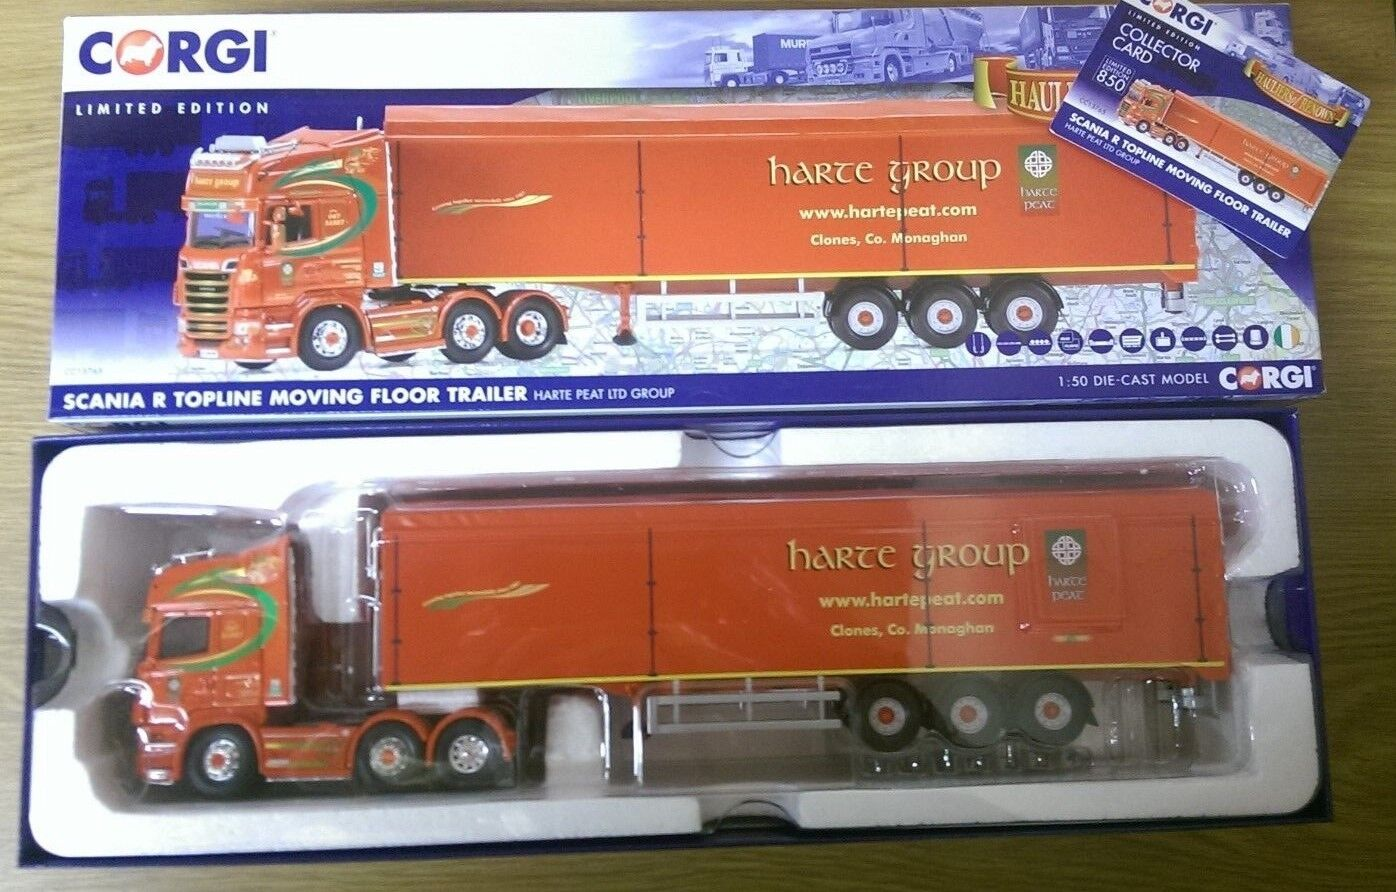 CORGI CC13765 SCANIA R TOPLINE Moving Floor Trailer Harte Harte Harte Group Ltd Ed. 001/850 | De Grandes Variétés